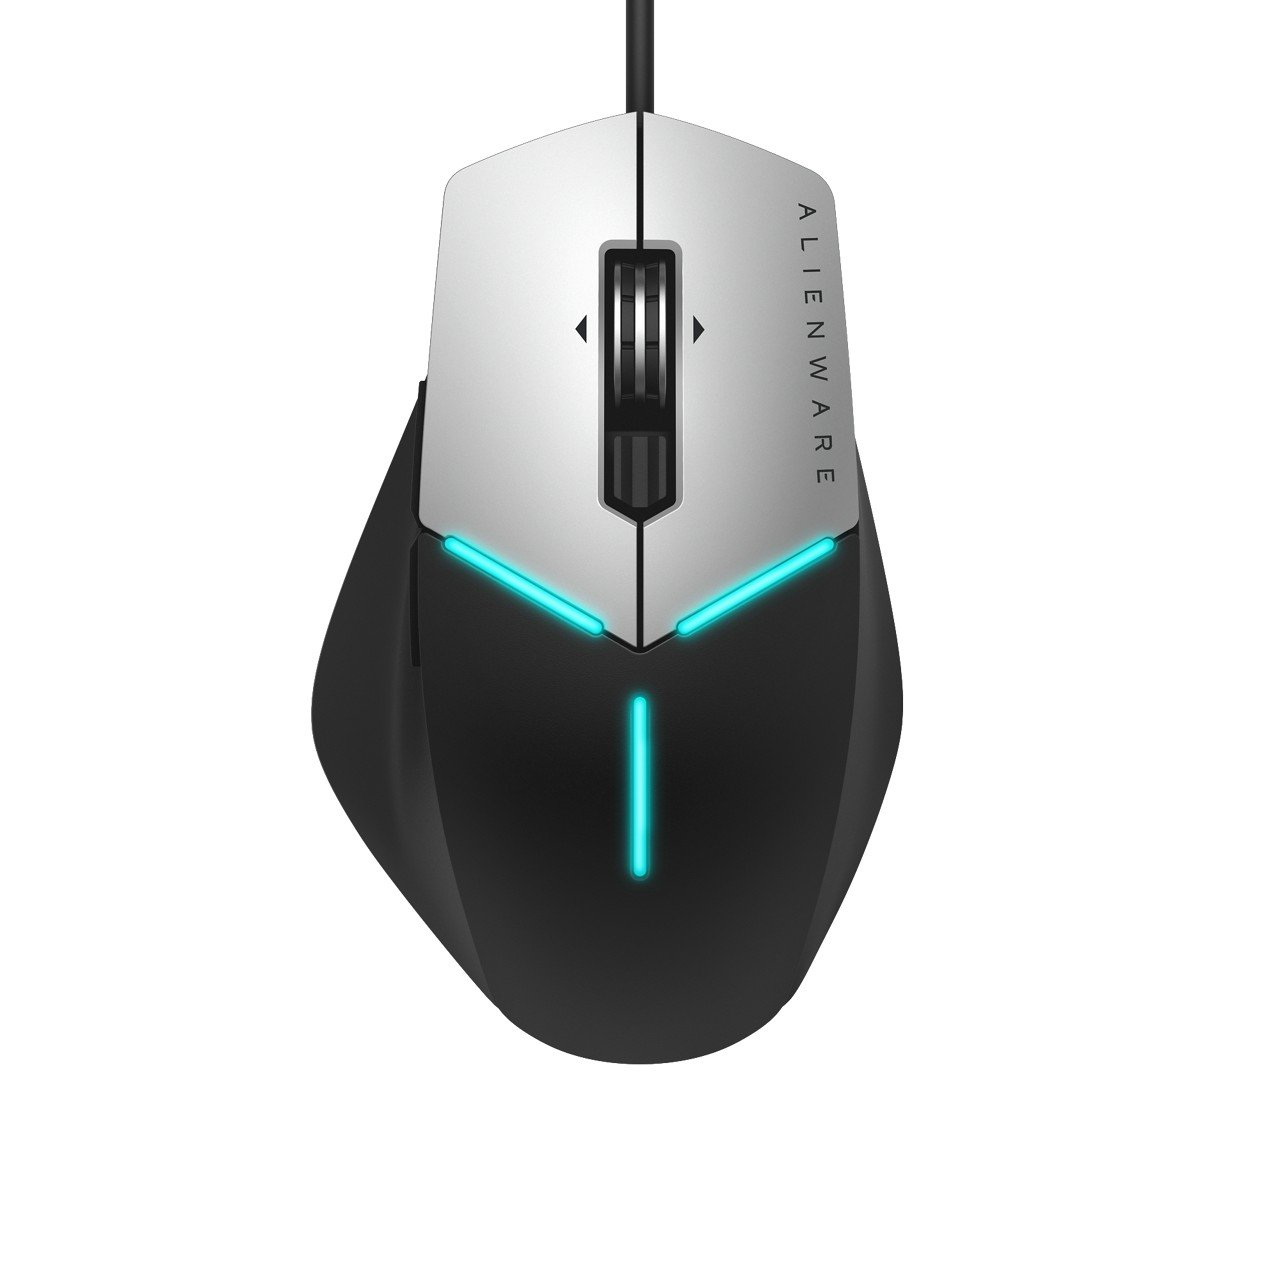 Alienware Advanced Gaming Mouse, AW558 by Alienware